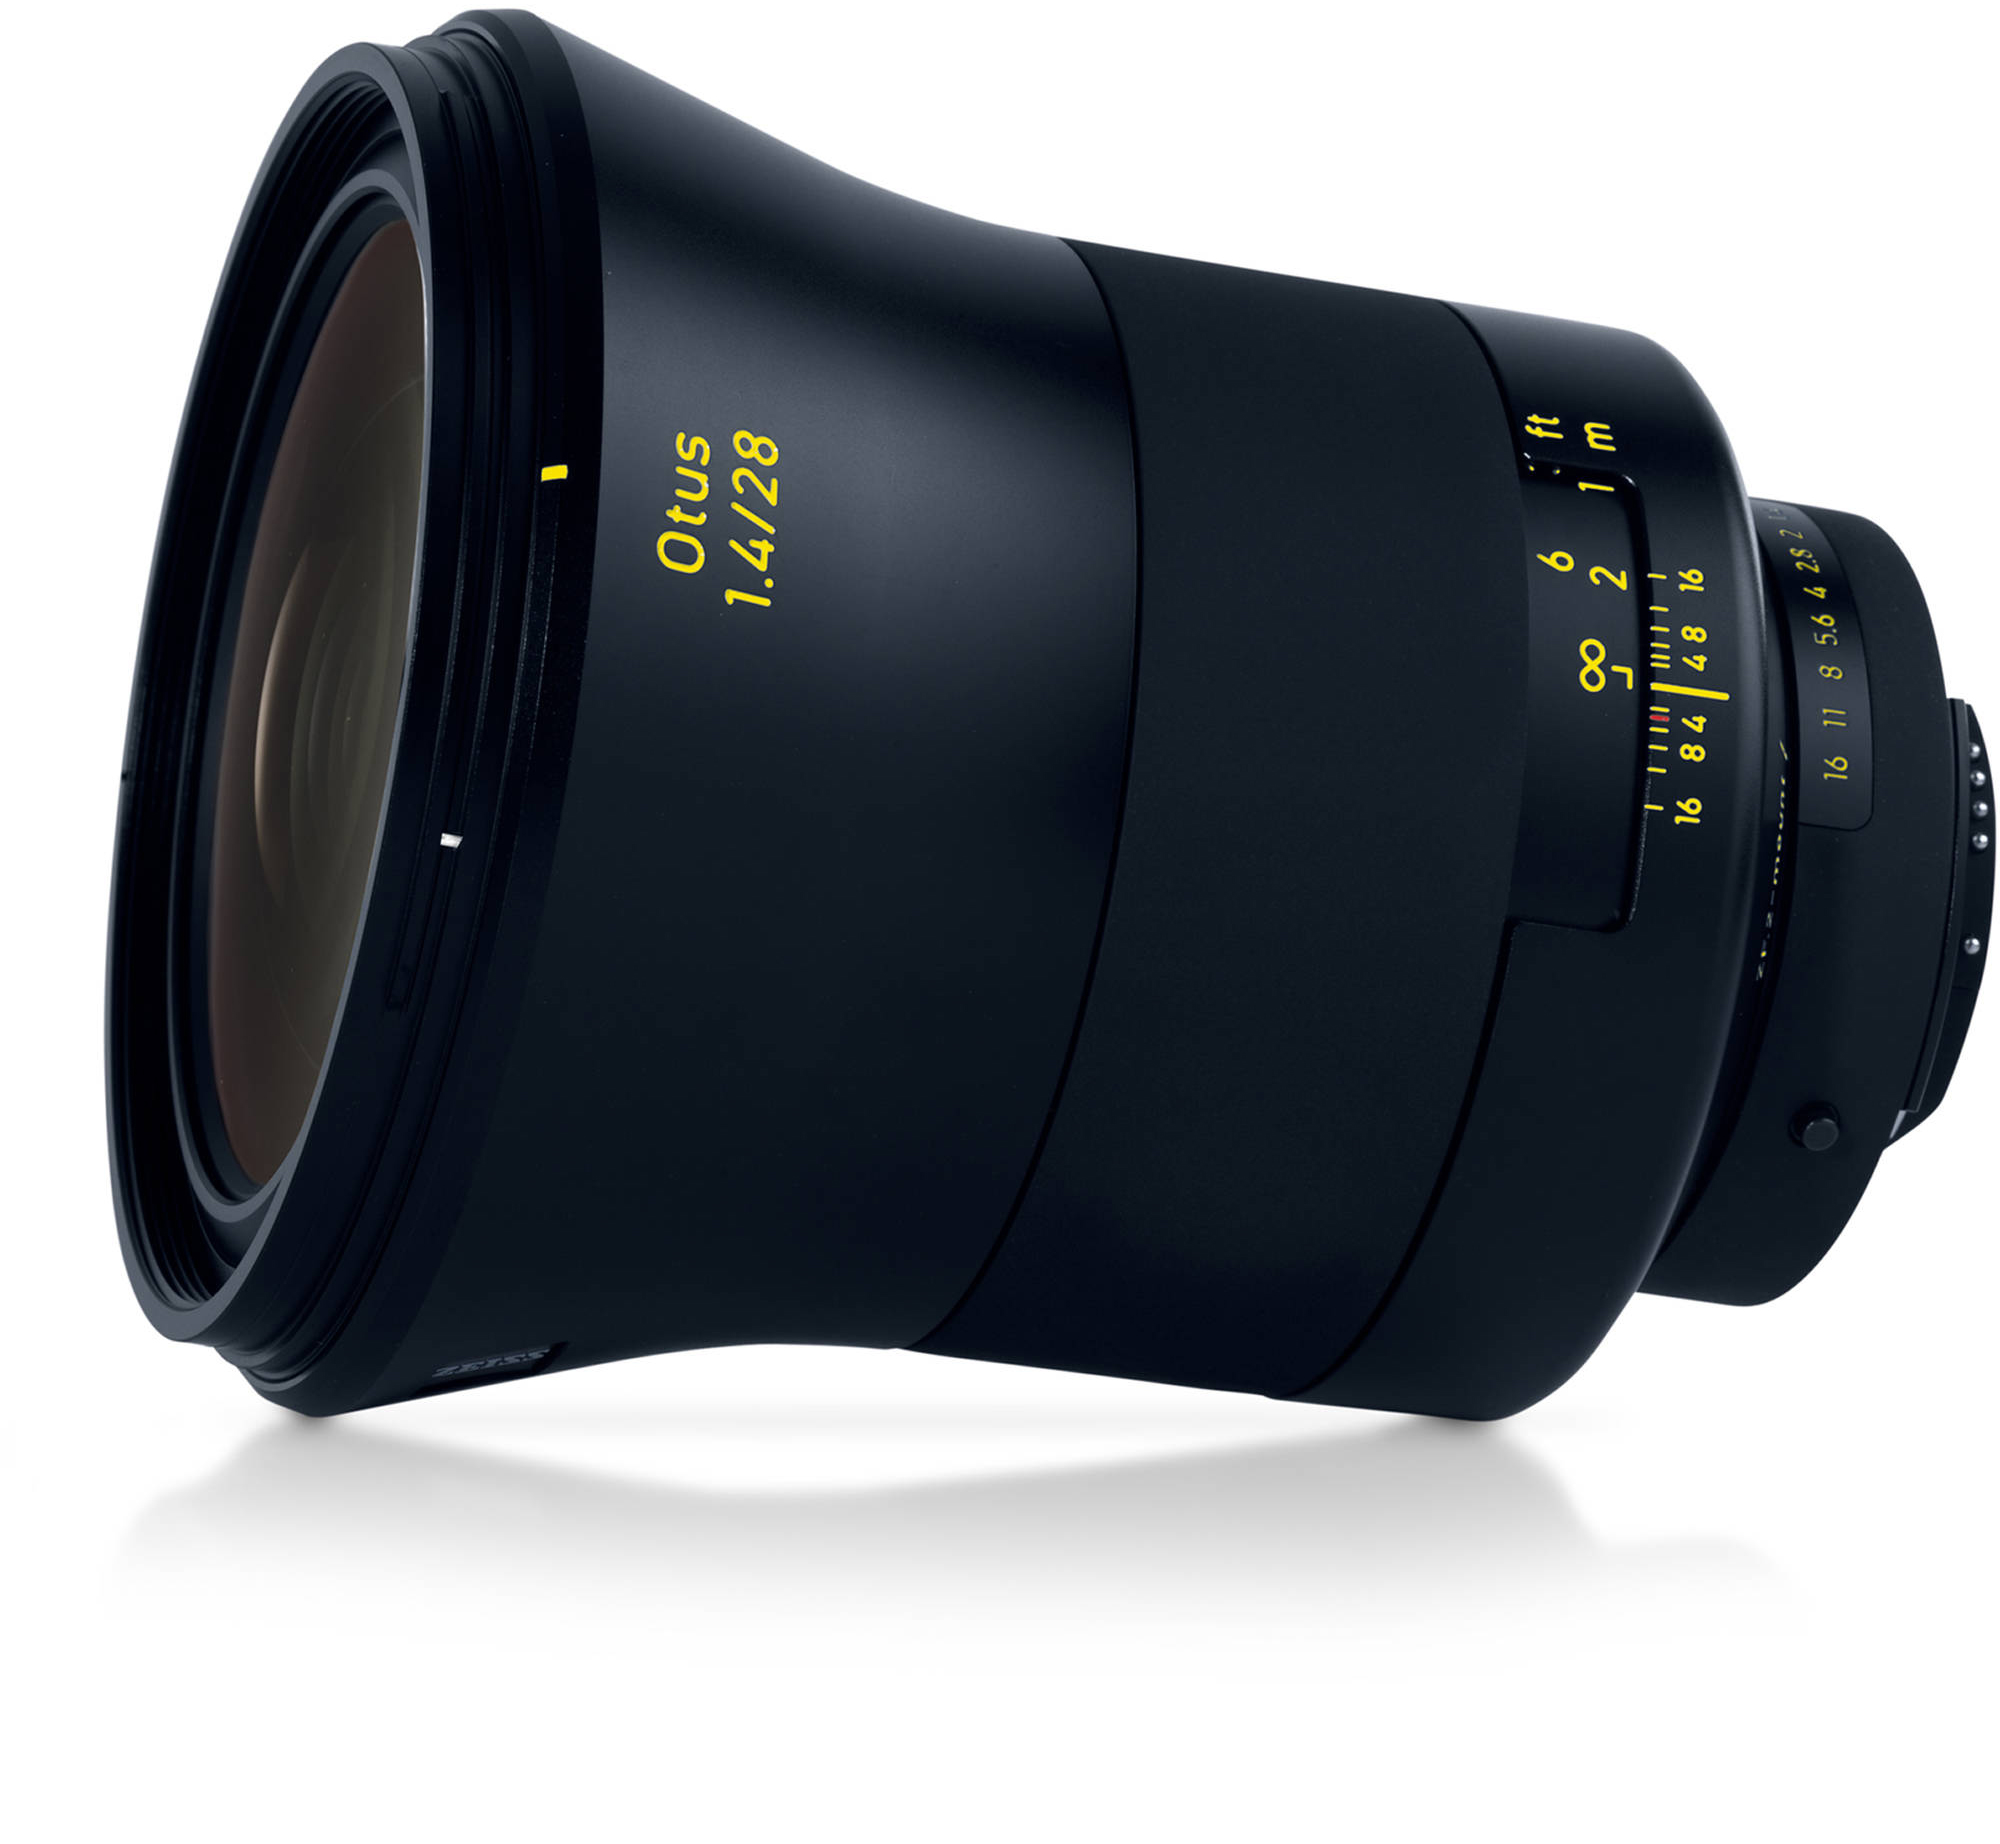 Zeiss Otus 28mm f/1.4 ZF.2 Lens for Nikon F